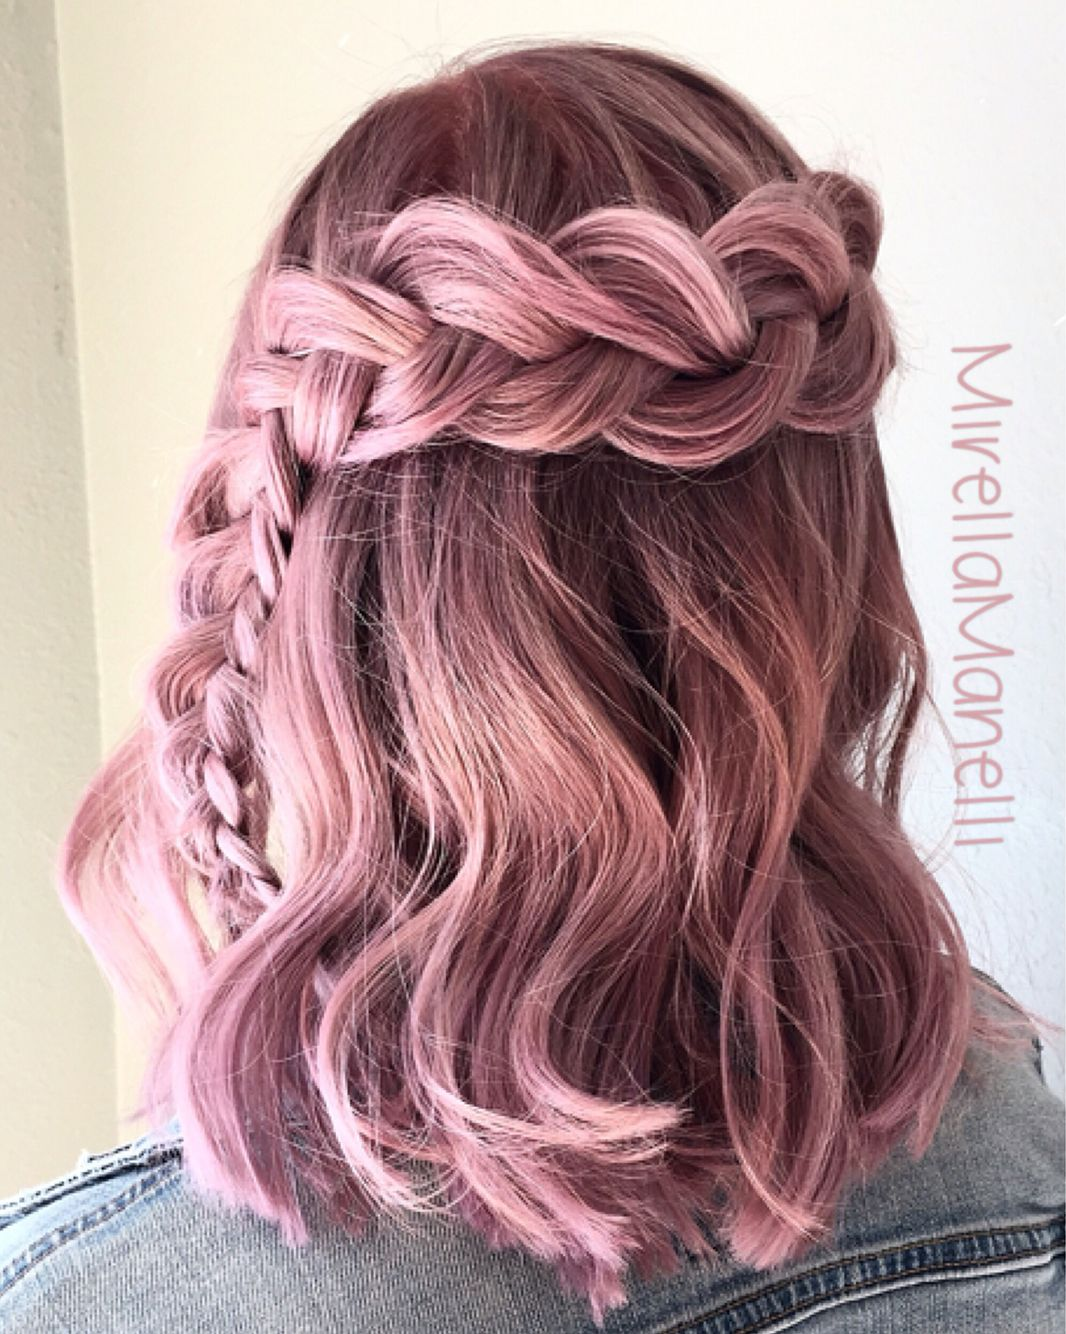 dusty violet pink braid rose bonbon cheveux rose coiffure rose et cheveux pastel. Black Bedroom Furniture Sets. Home Design Ideas